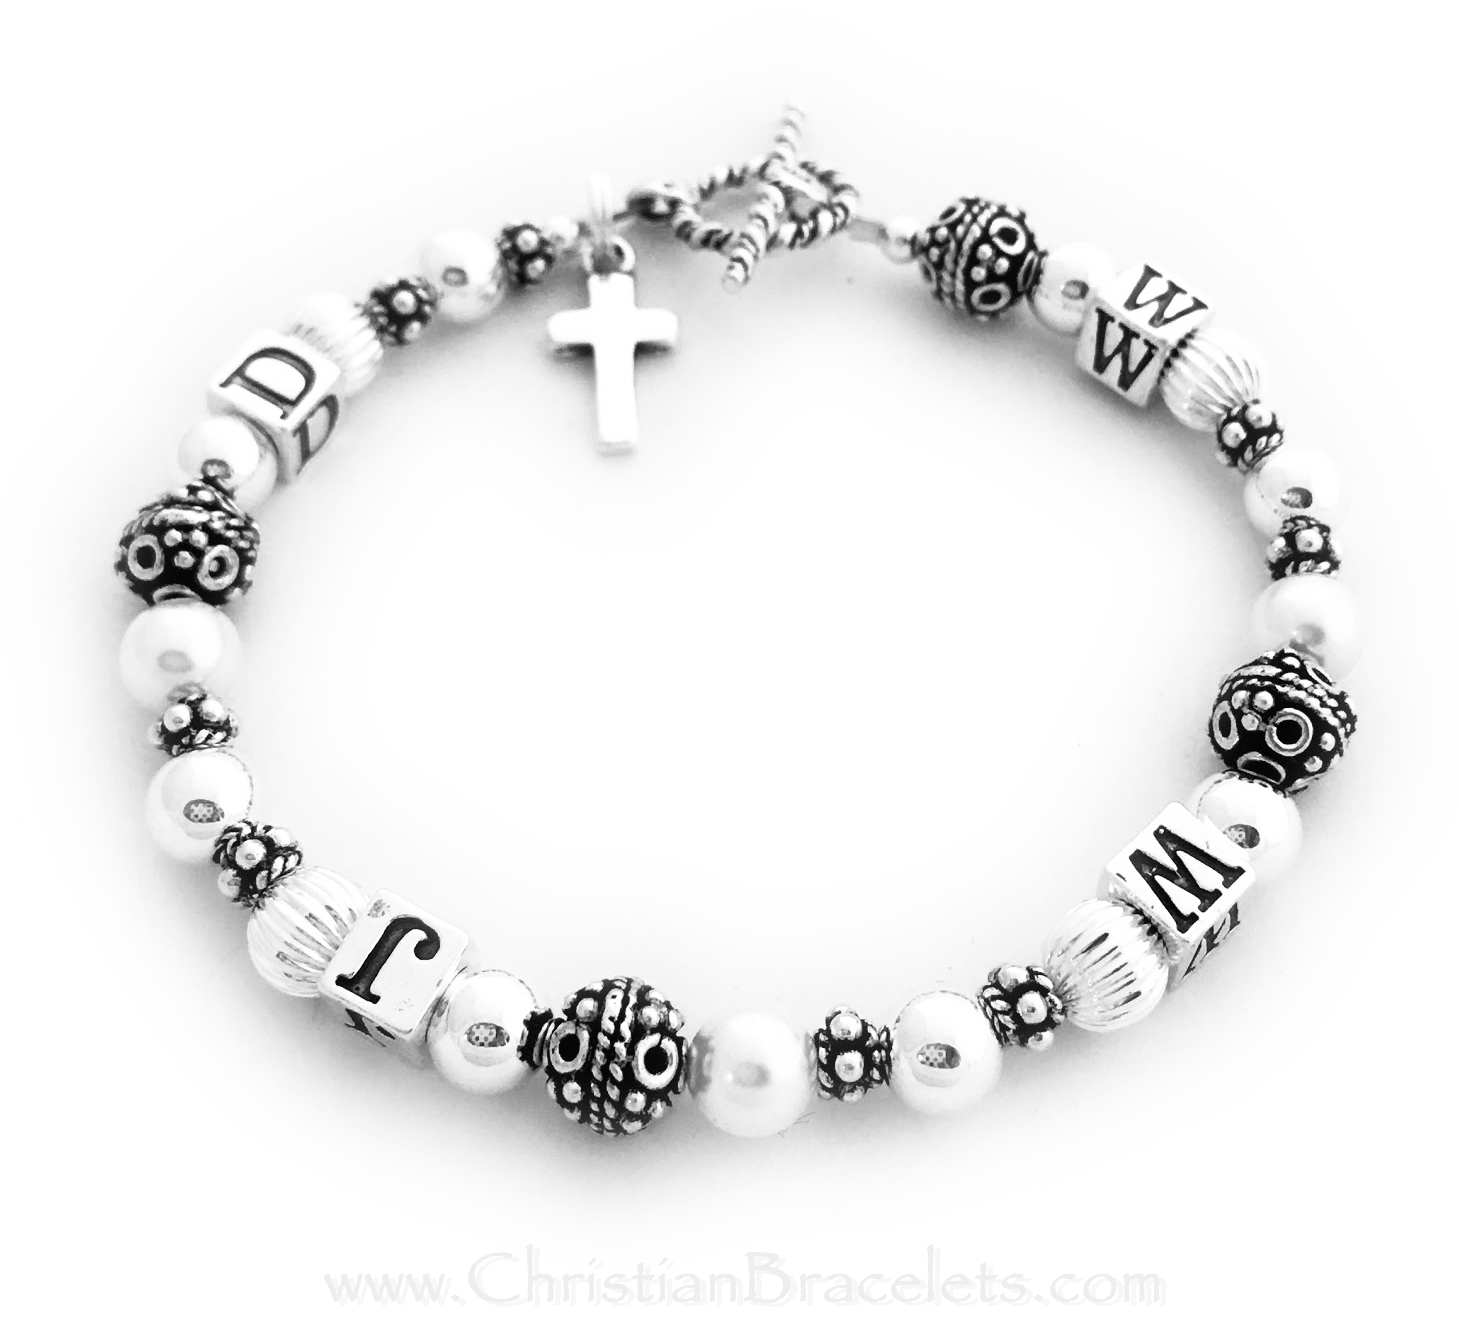 "What Would Jesus Do Bracelet with a Twisted Toggle clasp and an add-on charm: ""Simple Cross"" charm."